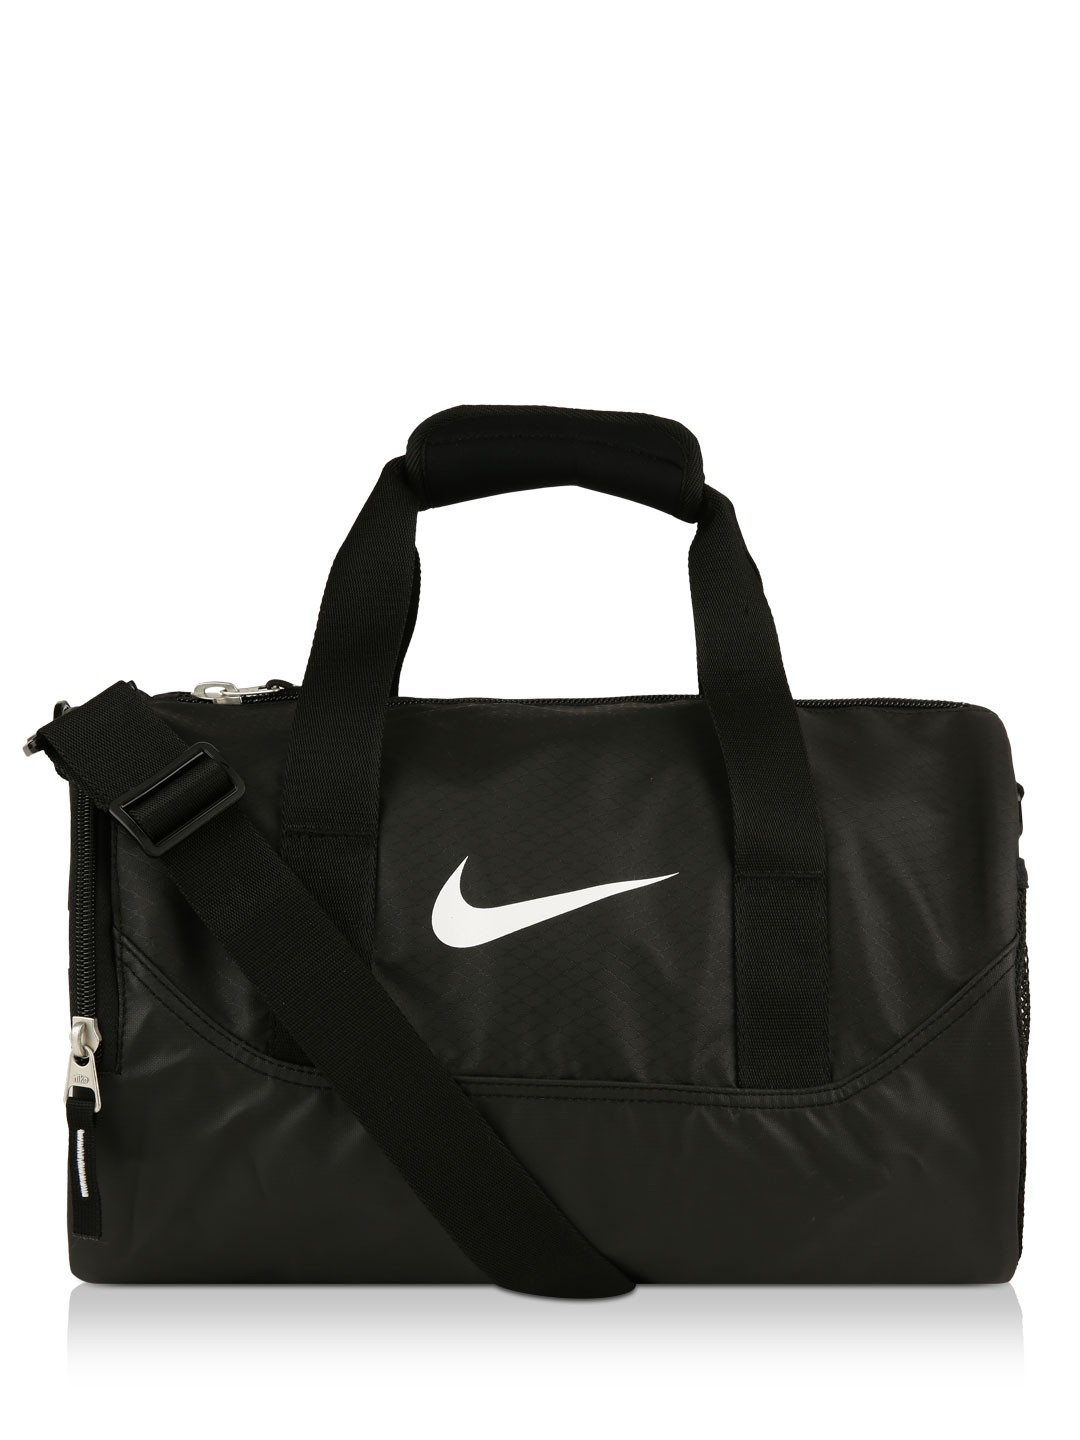 5038d2698 Buy Nike Duffle Bag Online India | Stanford Center for Opportunity ...